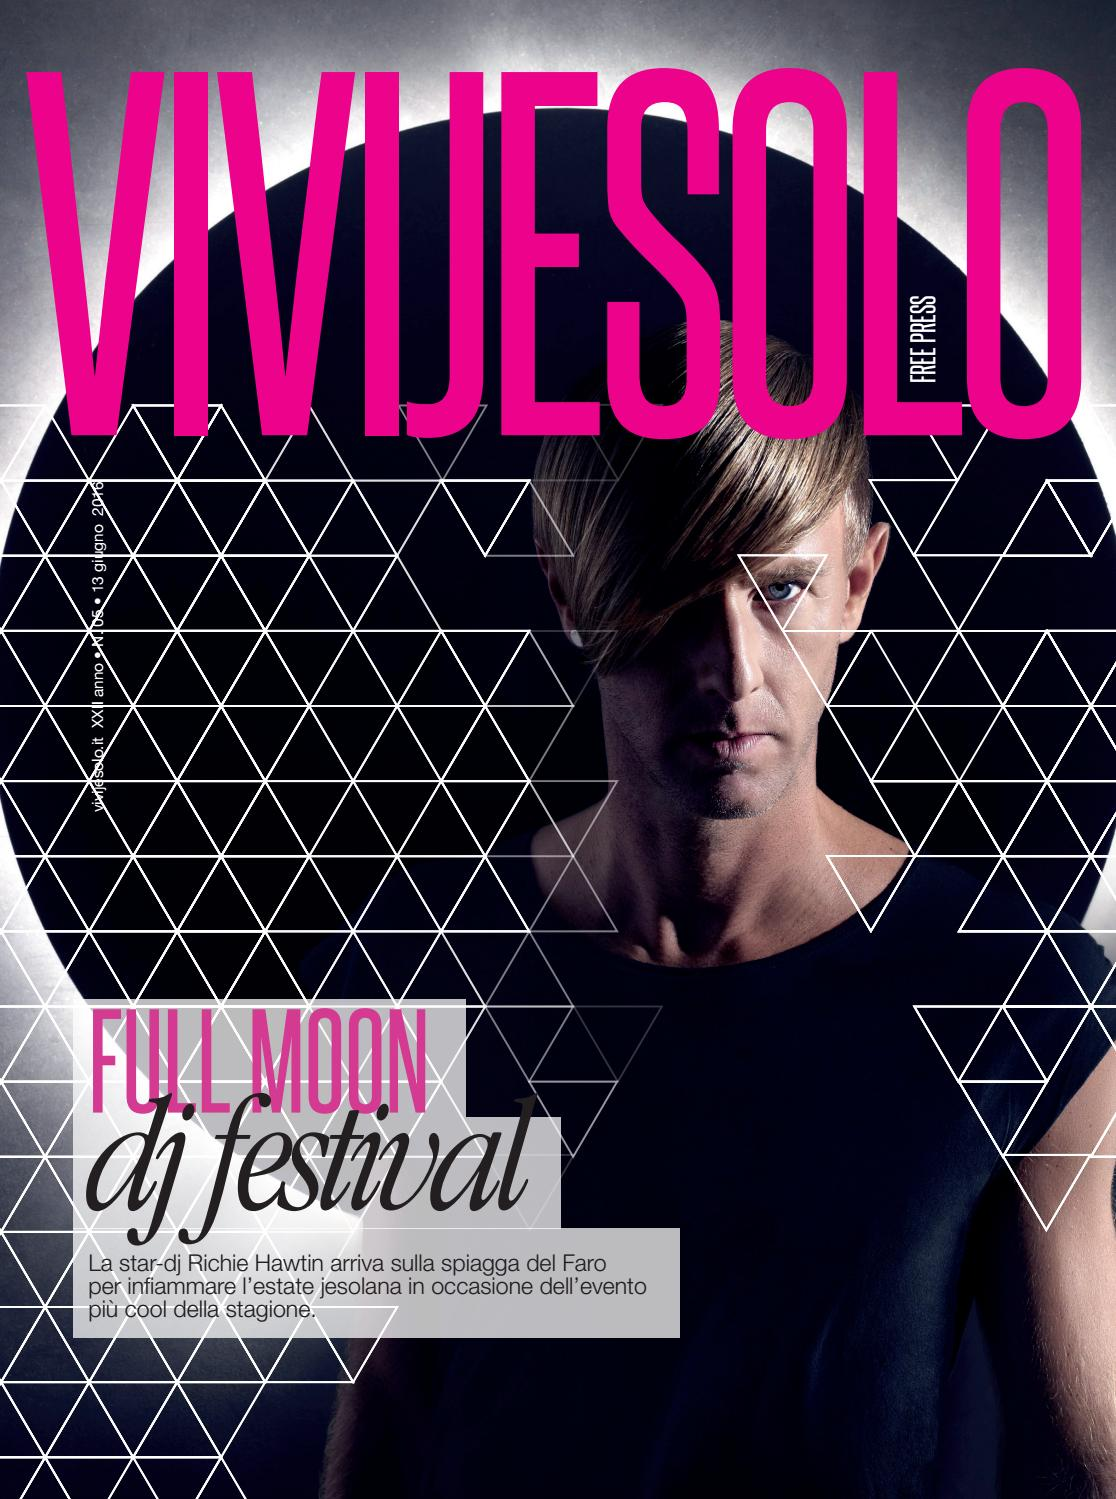 vivijesolo n 5 13 giugno 2016 by next italia issuu